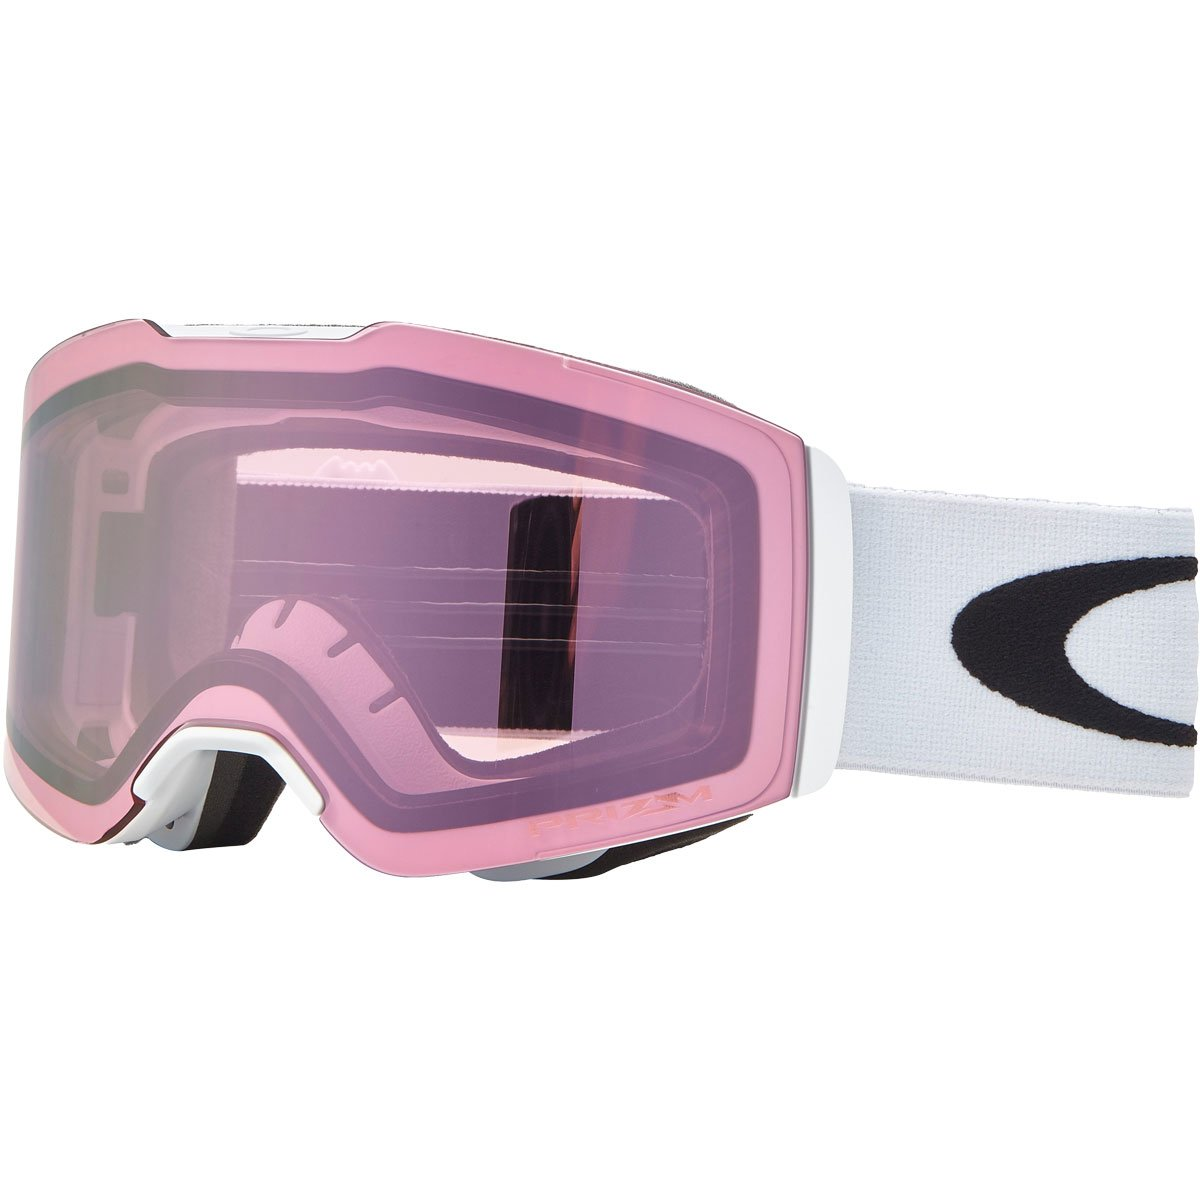 Oakley Fall Line Snow Goggles, Matte White Frame, Prizm High Intensity Pink Iridium Lens, Medium by Oakley